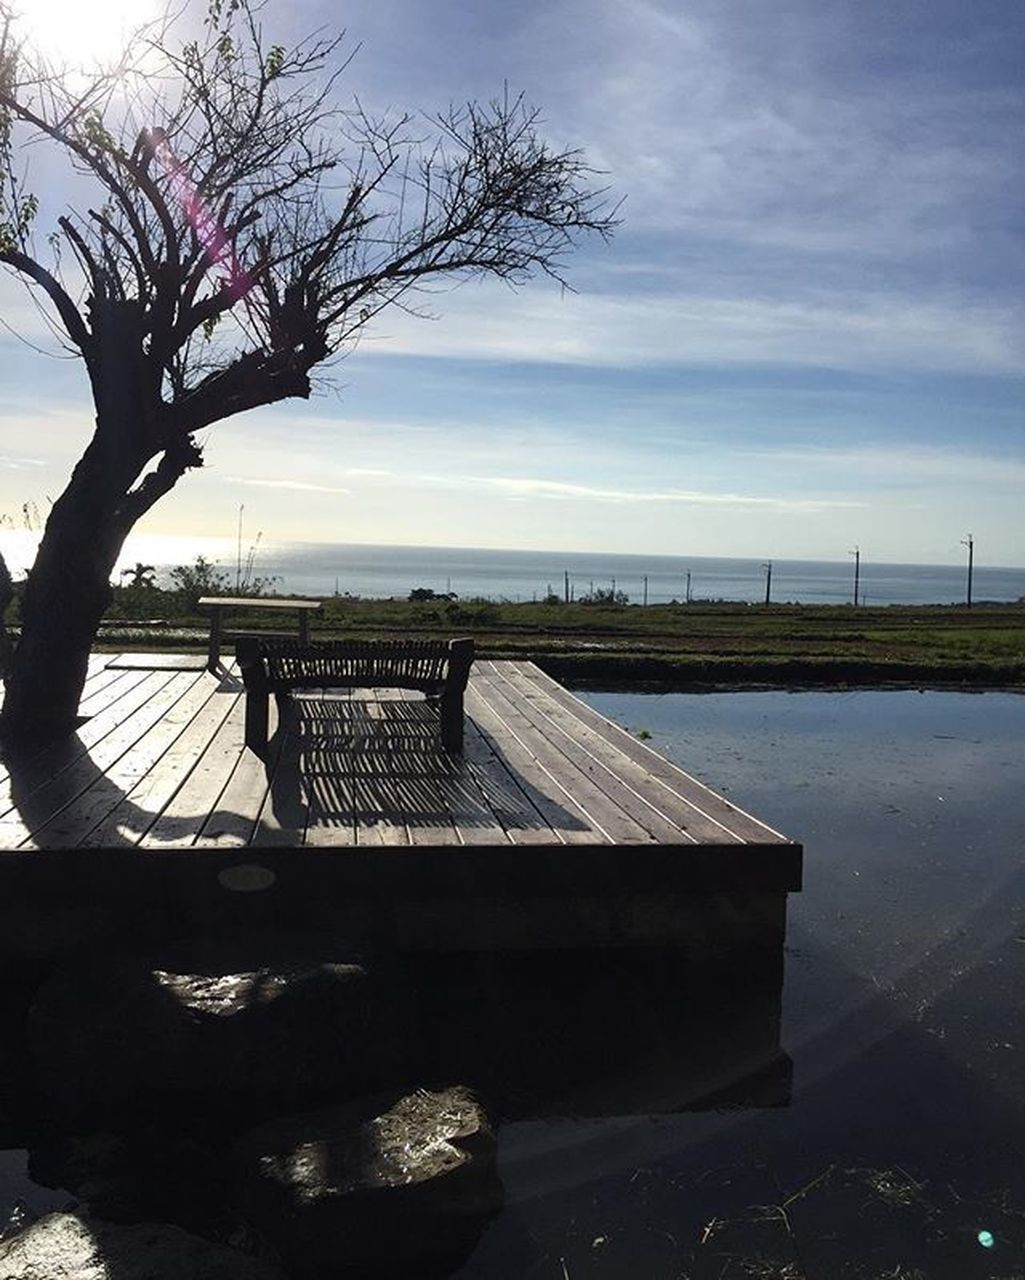 water, tree, no people, nature, beauty in nature, outdoors, sky, scenics, tranquility, day, bare tree